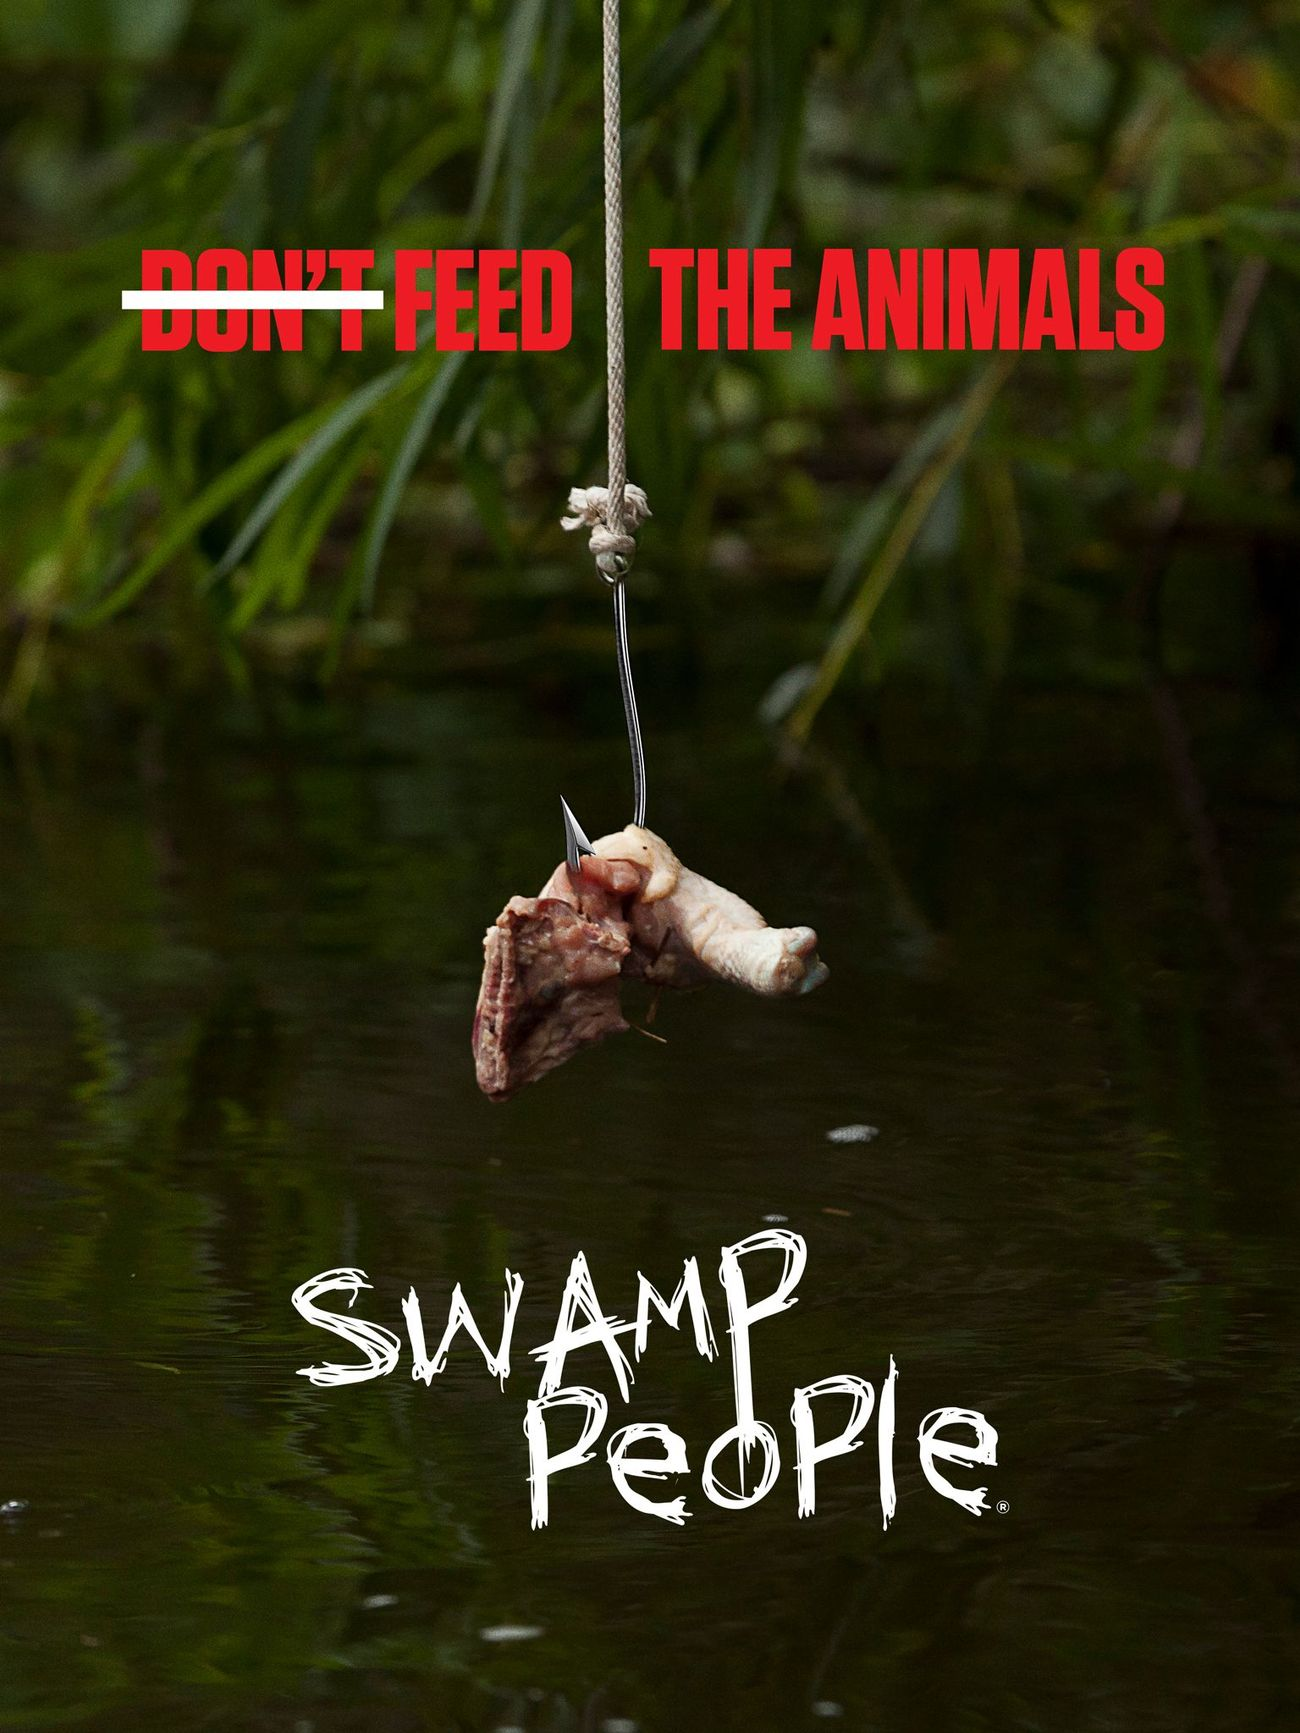 Swamp People Season 2 Full Episodes 123movies